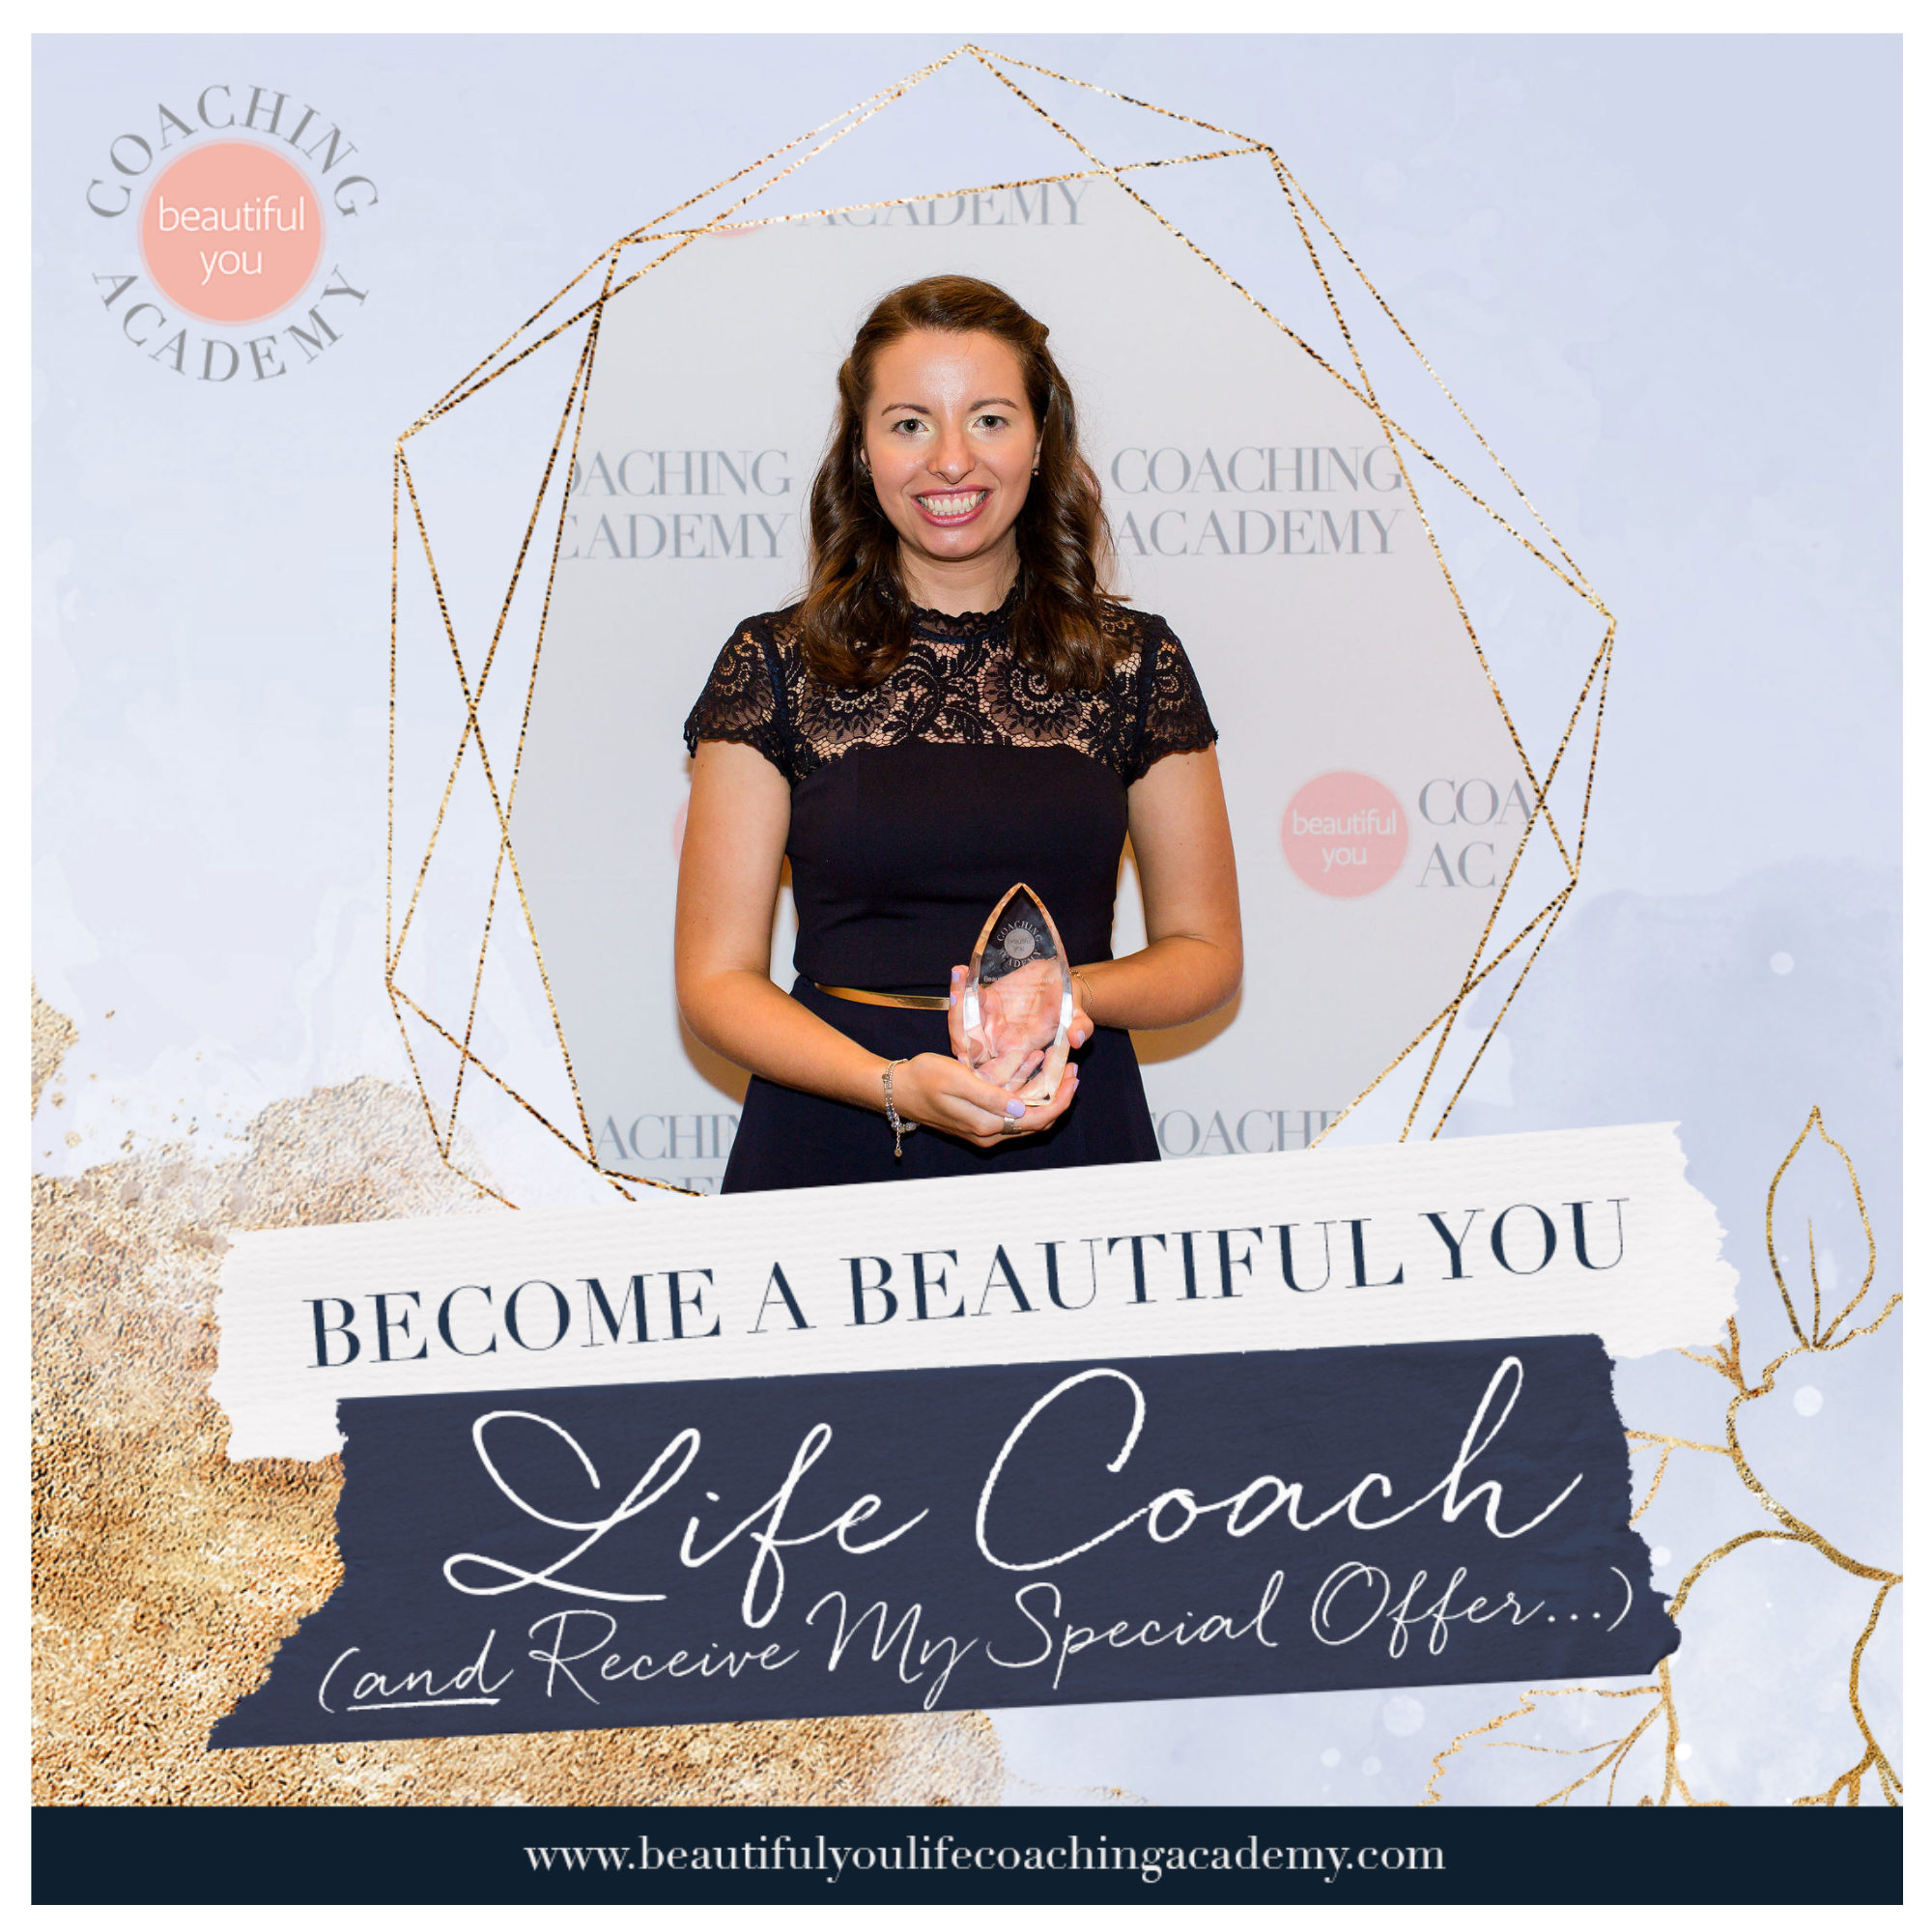 Become a Beautiful You life coach and receive my special offer https://oneinfinitelife.com/beautiful-you-coaching-academy/